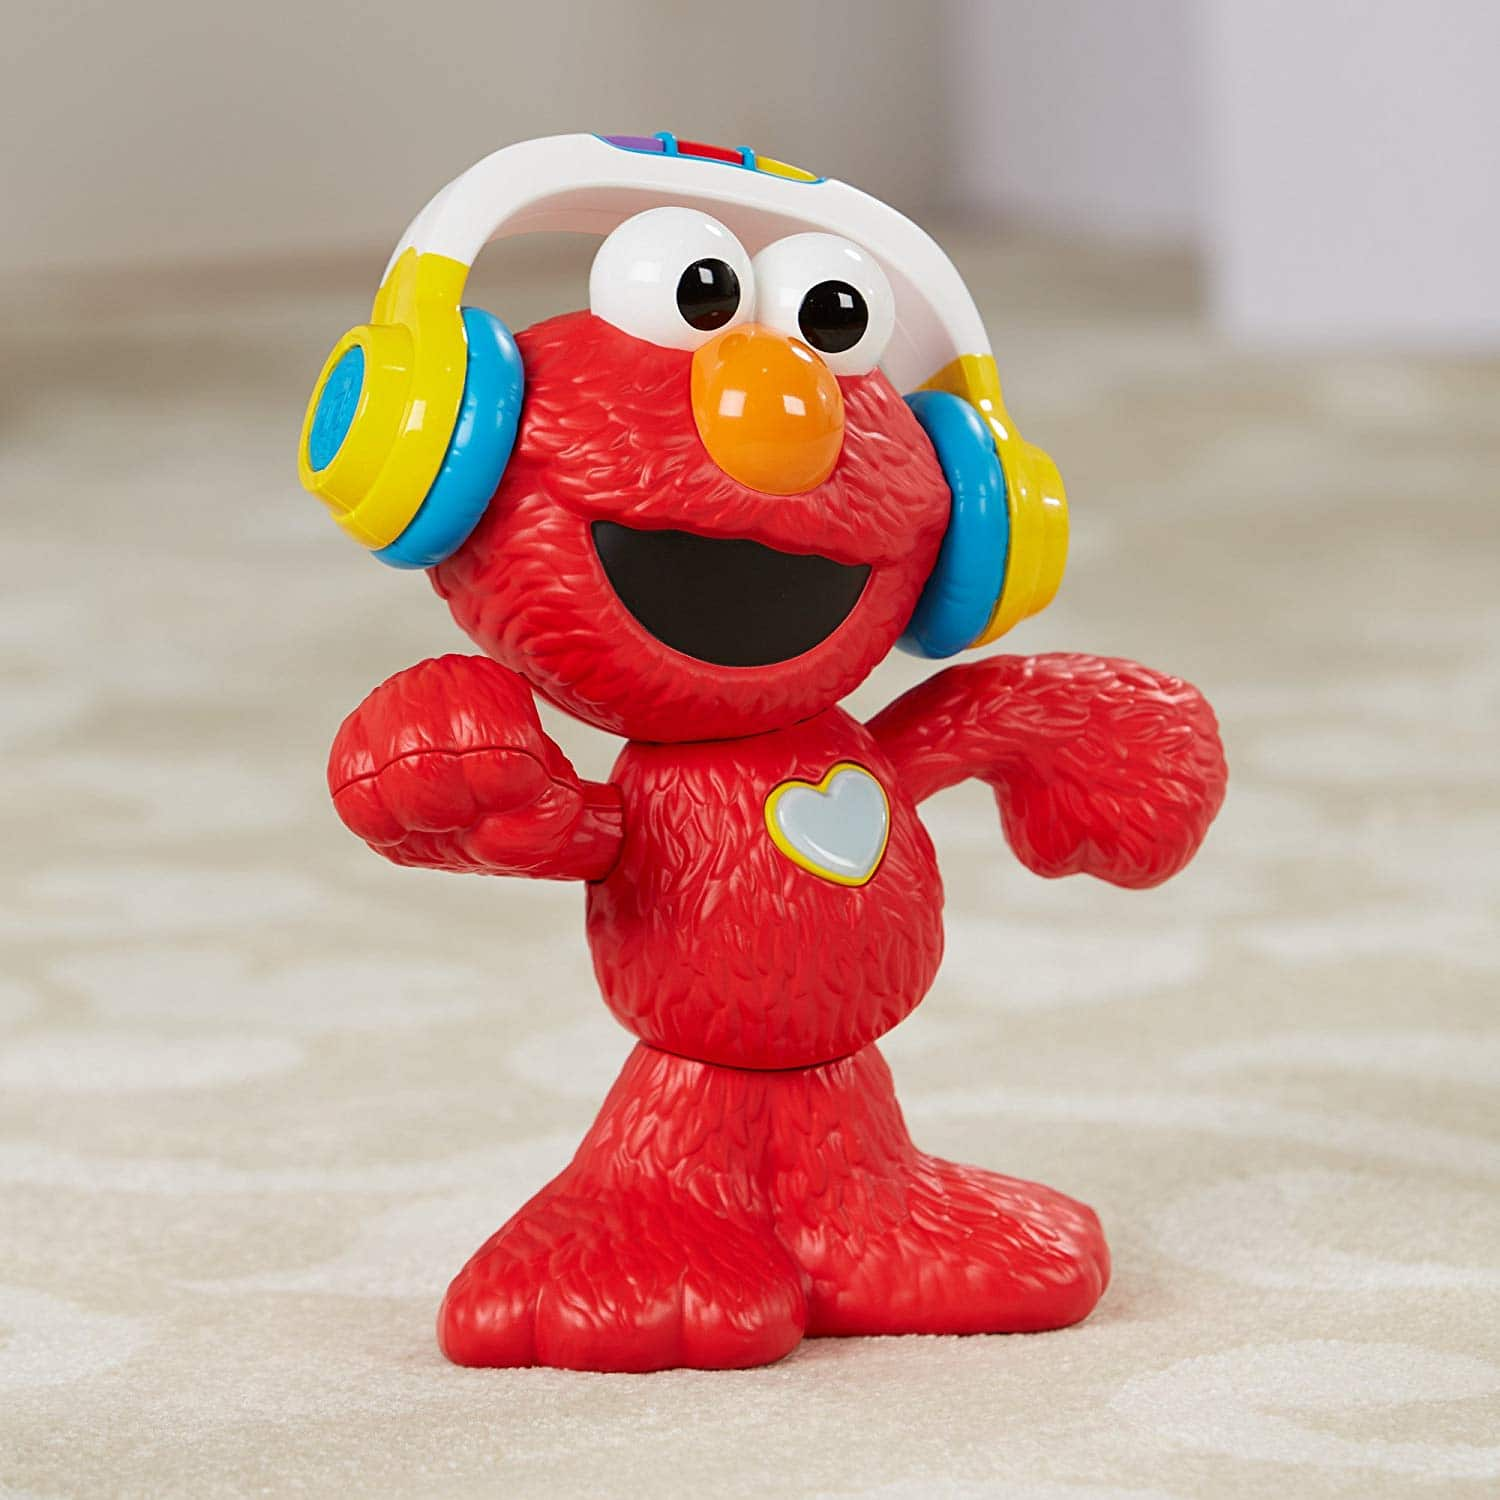 Sesame Street Let's Dance Elmo: 12-inch Elmo Toy that Sings and Dances, With 3 Musical Modes, Sesame Street Toy for Kids $19.99 Free Shipping